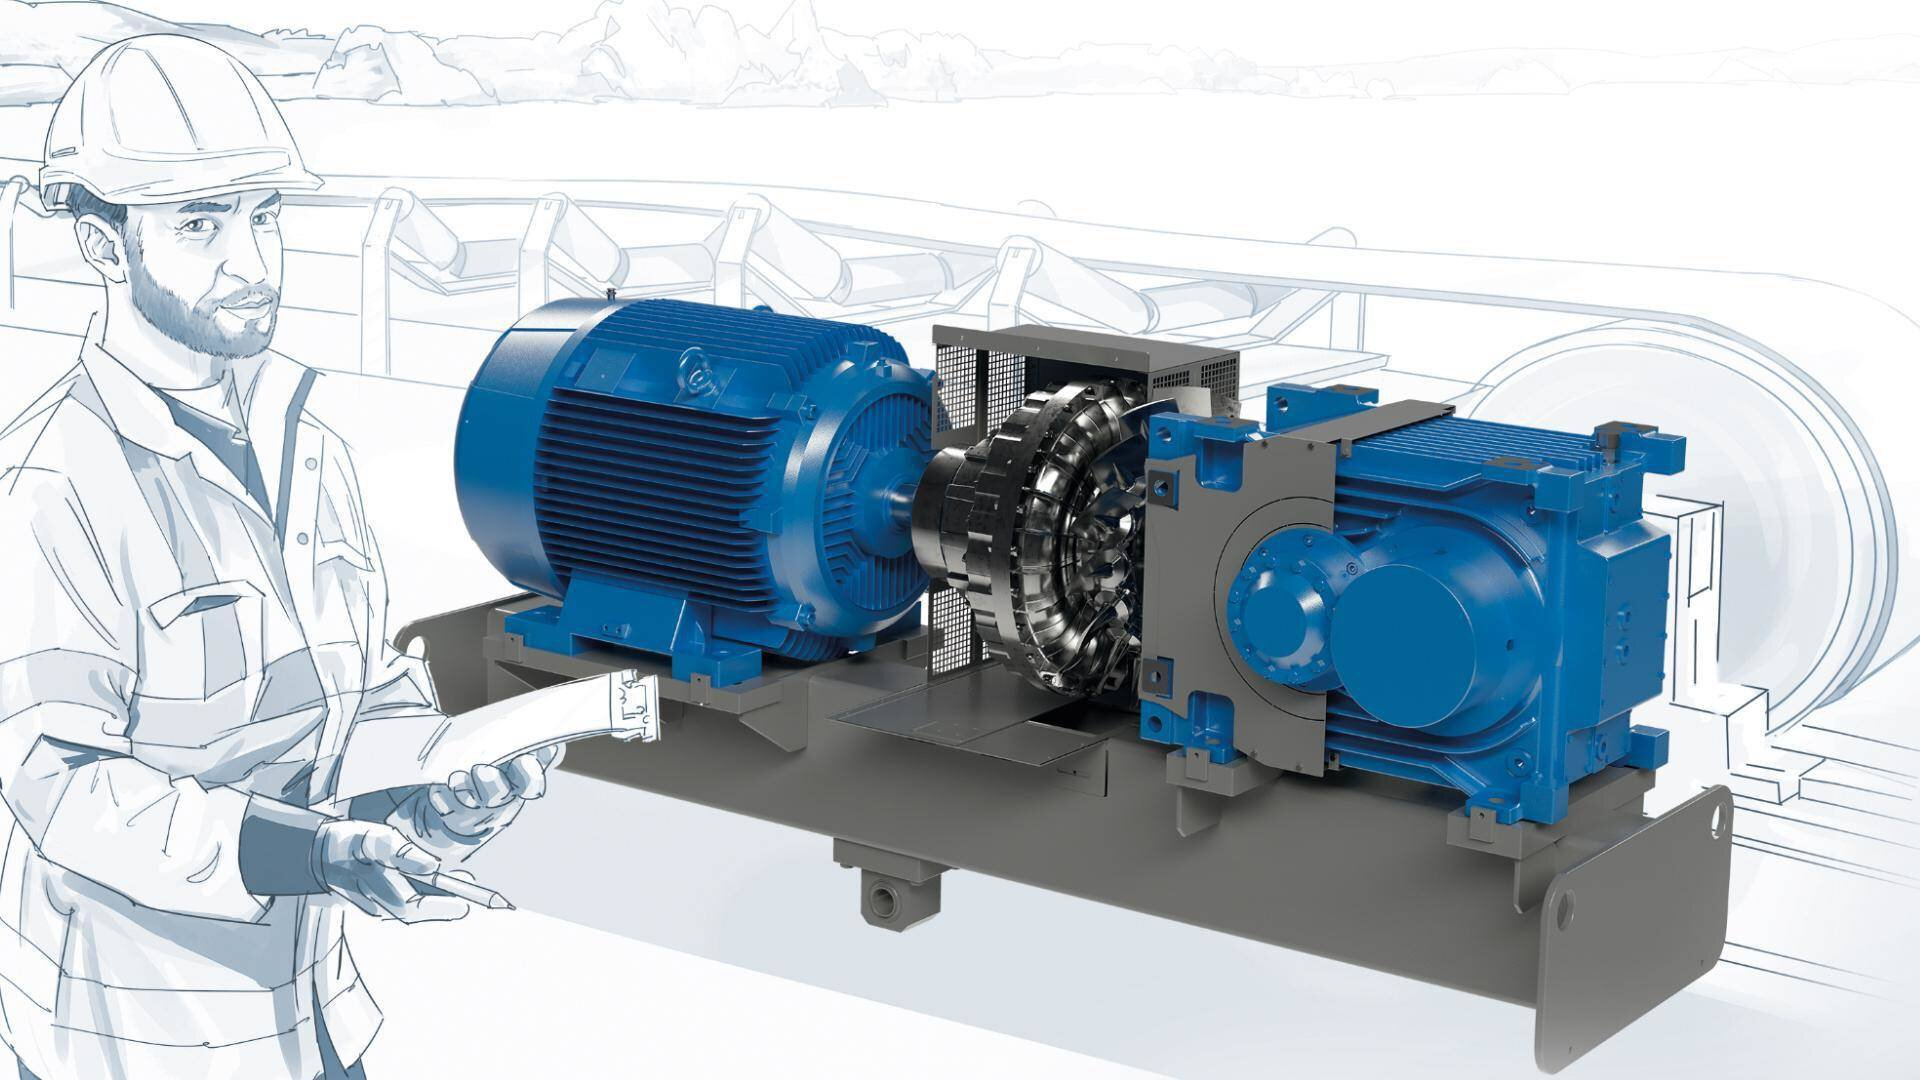 Gallery image 0 - MAXXDRIVE® XT industrial gear units are especially designed for conveyor belt applications in the bulk material handling industry which require low speed ratios in combination with high powers